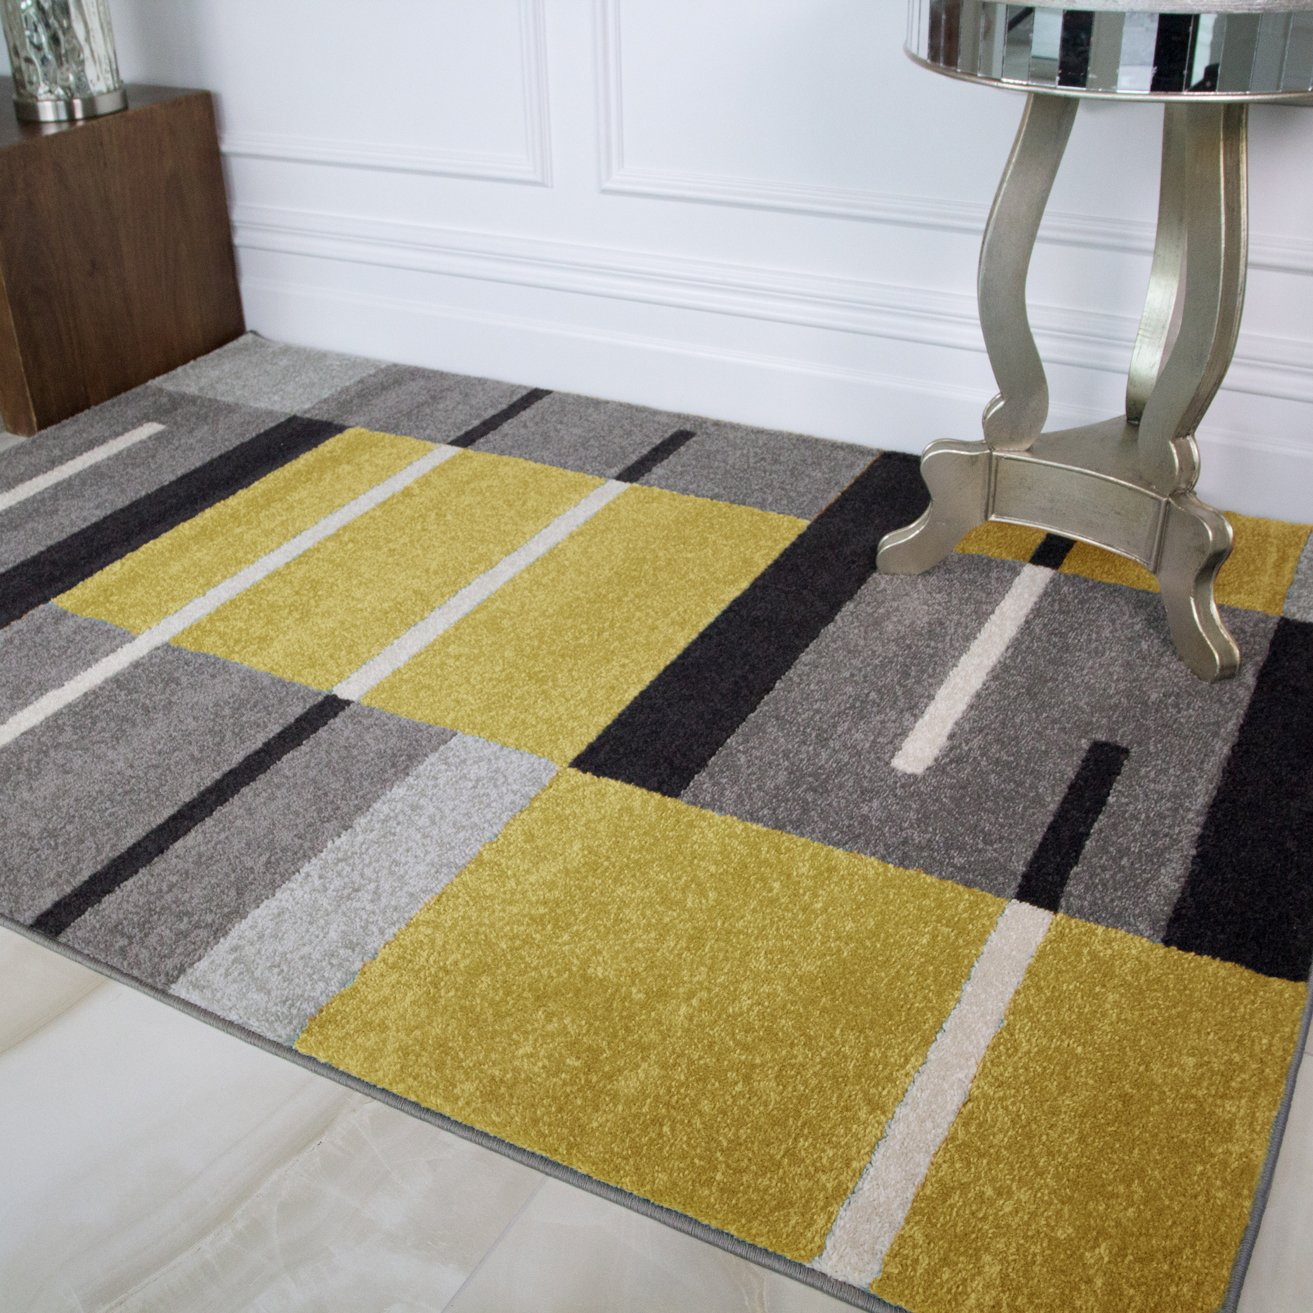 Details About Small Large Ochre Yellow Patchwork Rugs Gray Geometric Bohemian Living Room Rug